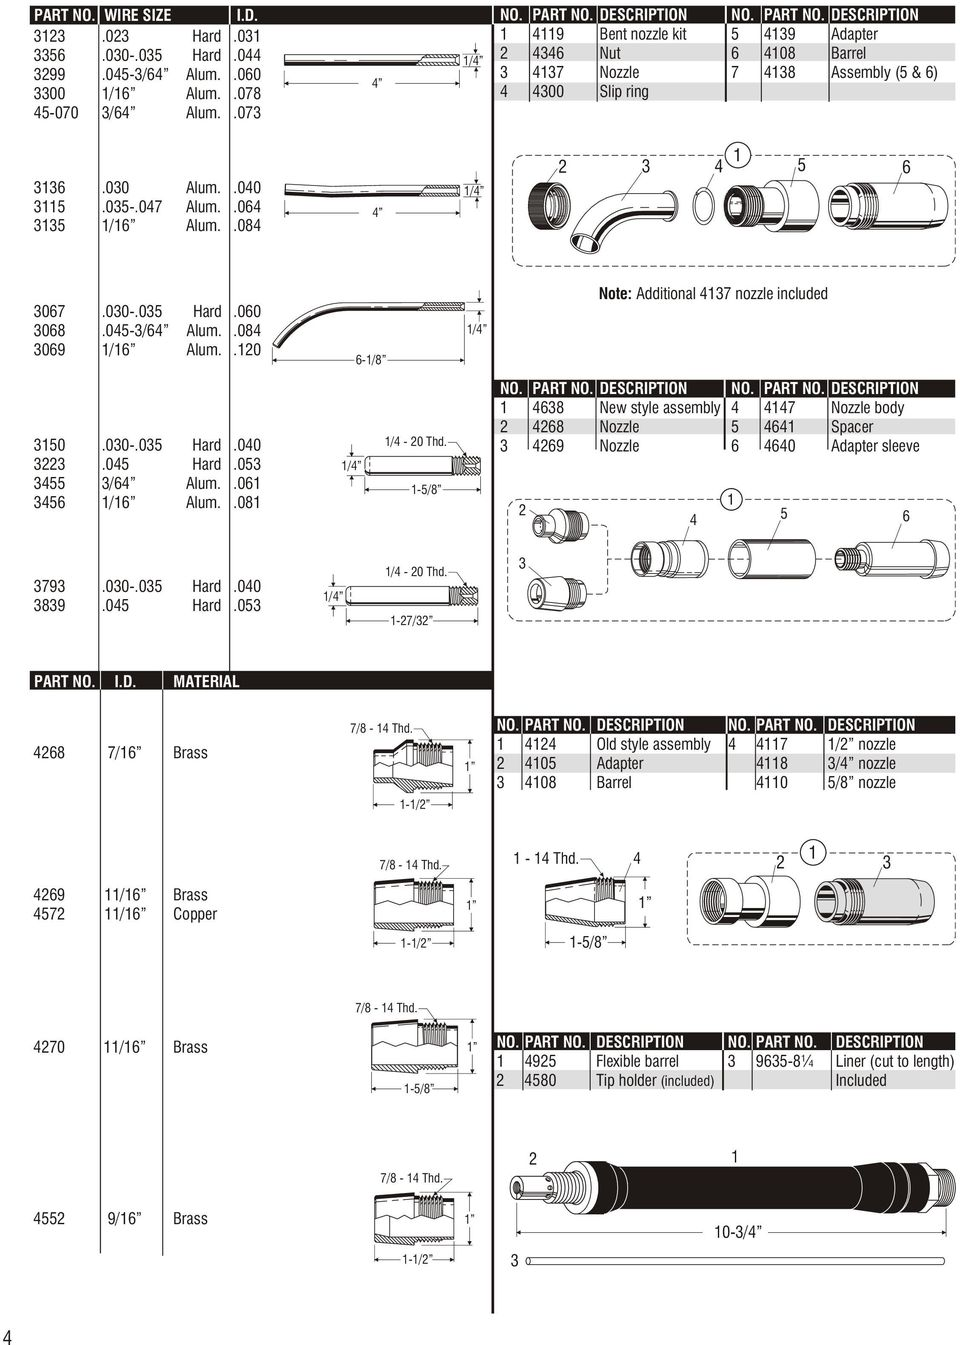 Miller Spool Gun Wiring Diagram Schematic 2019 Maxstar 200 Mig Welder Parts Diagrams Imageresizertool Com Aec 4d Direct Connect Solid State Operation